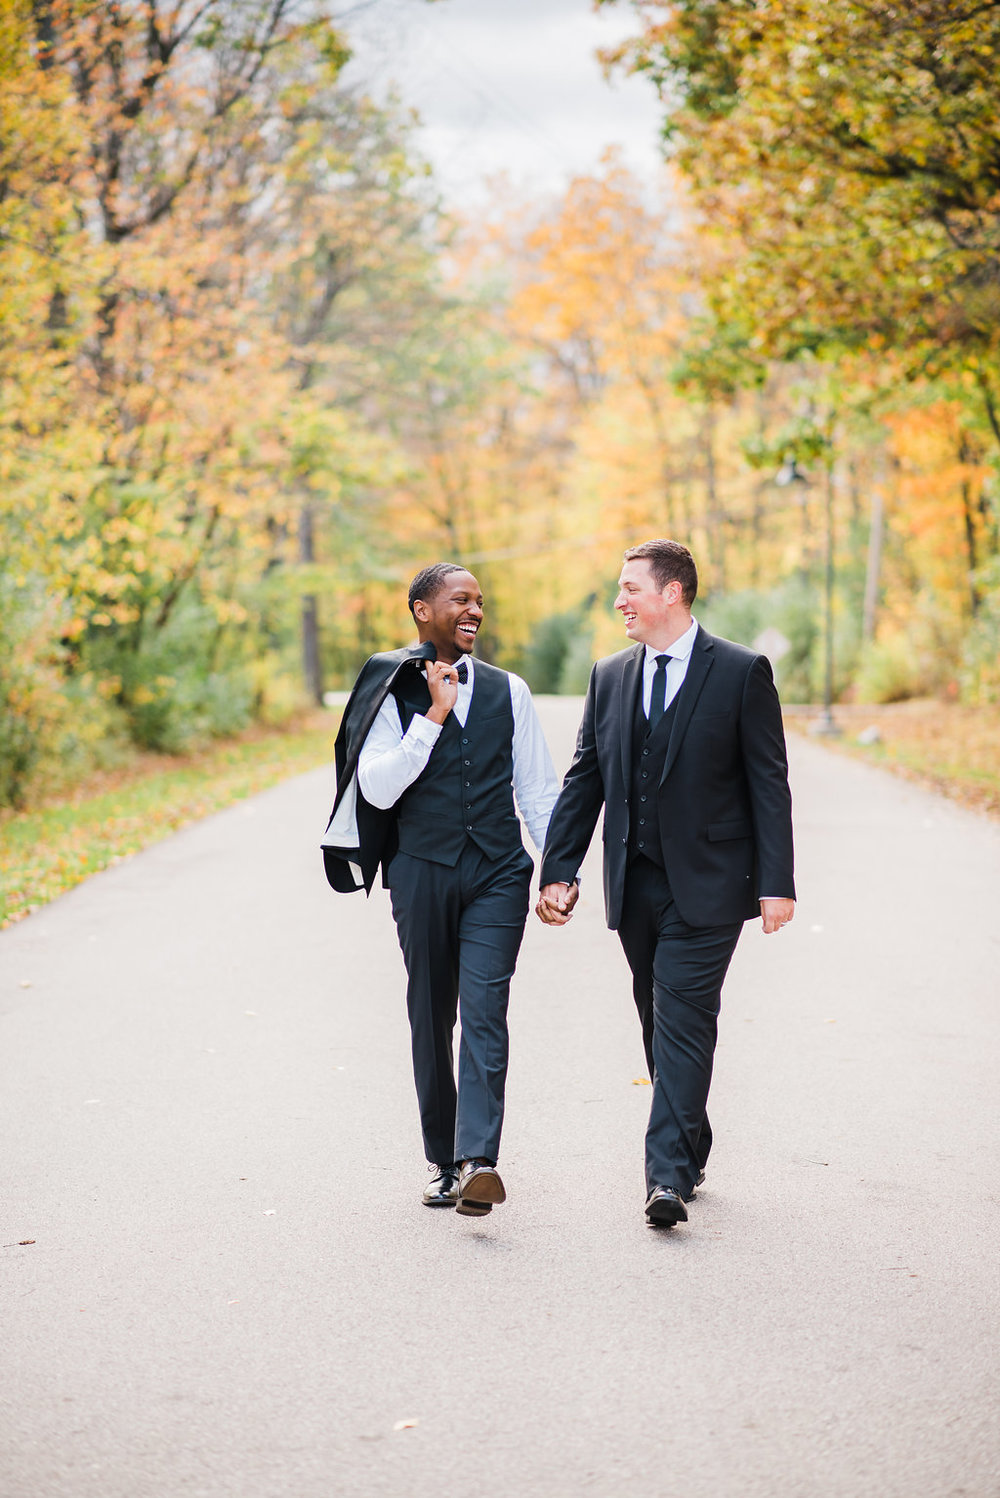 RiverClubofMequon-MequonWI-LGBT-Gay-StyledShoot-49.jpg